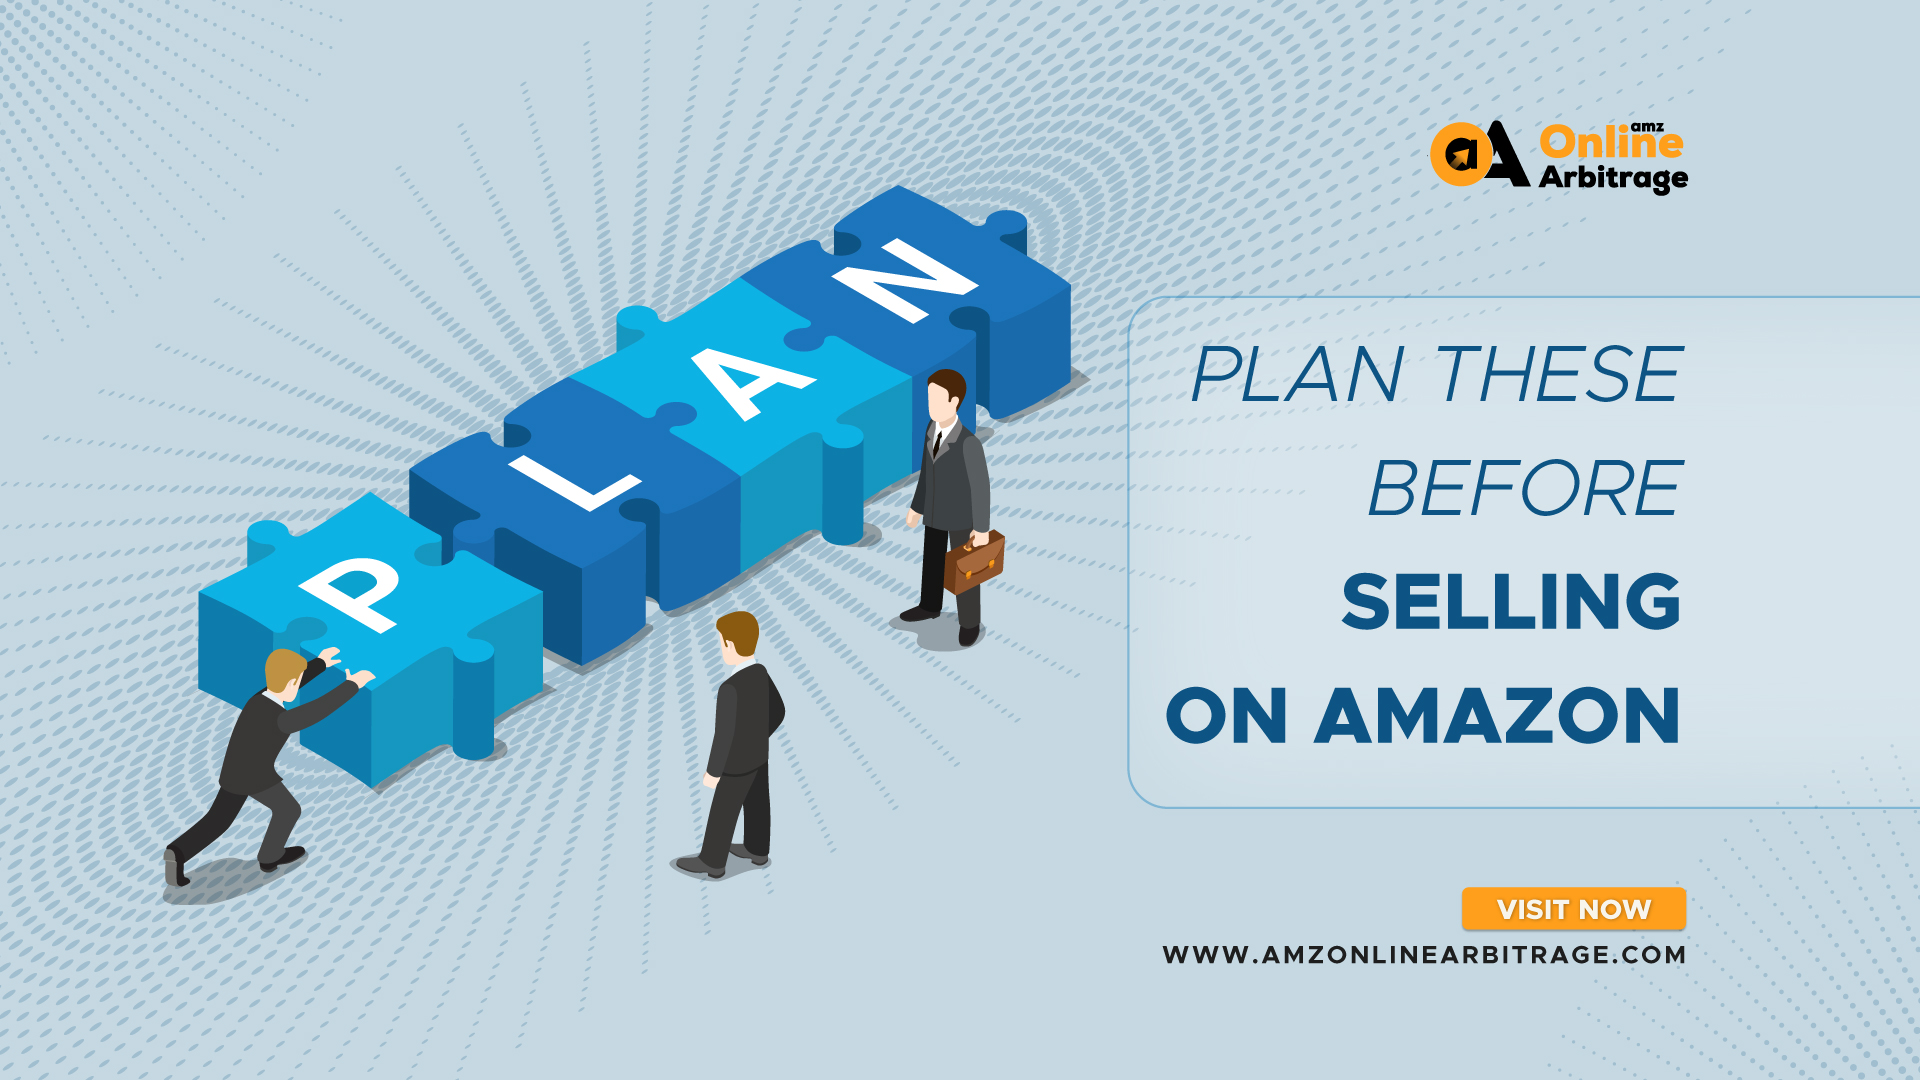 PLAN THESE BEFORE SELLING ON AMAZON